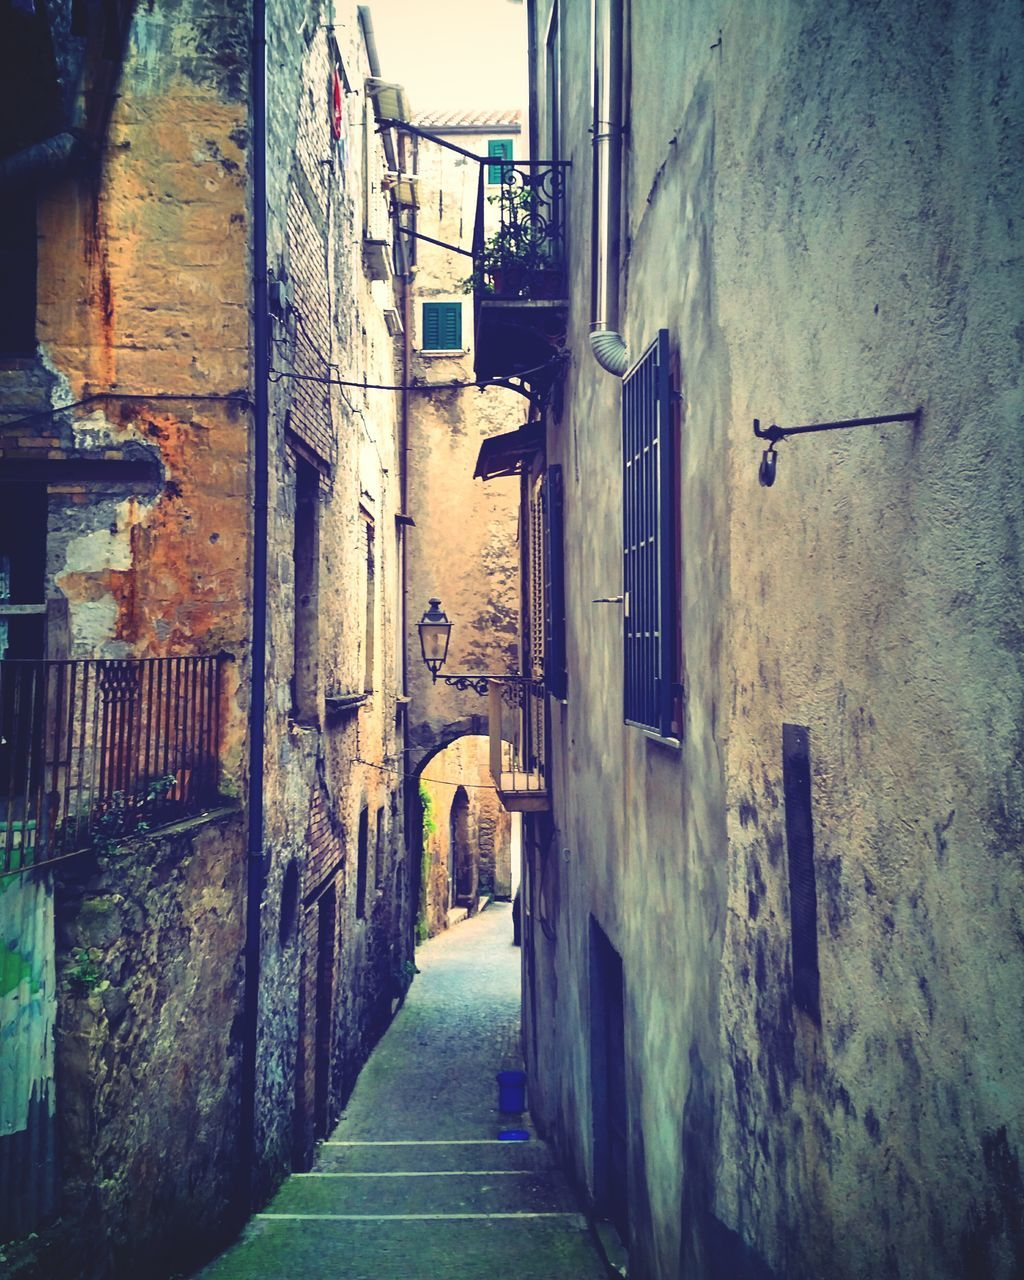 architecture, built structure, building exterior, the way forward, residential building, alley, no people, day, outdoors